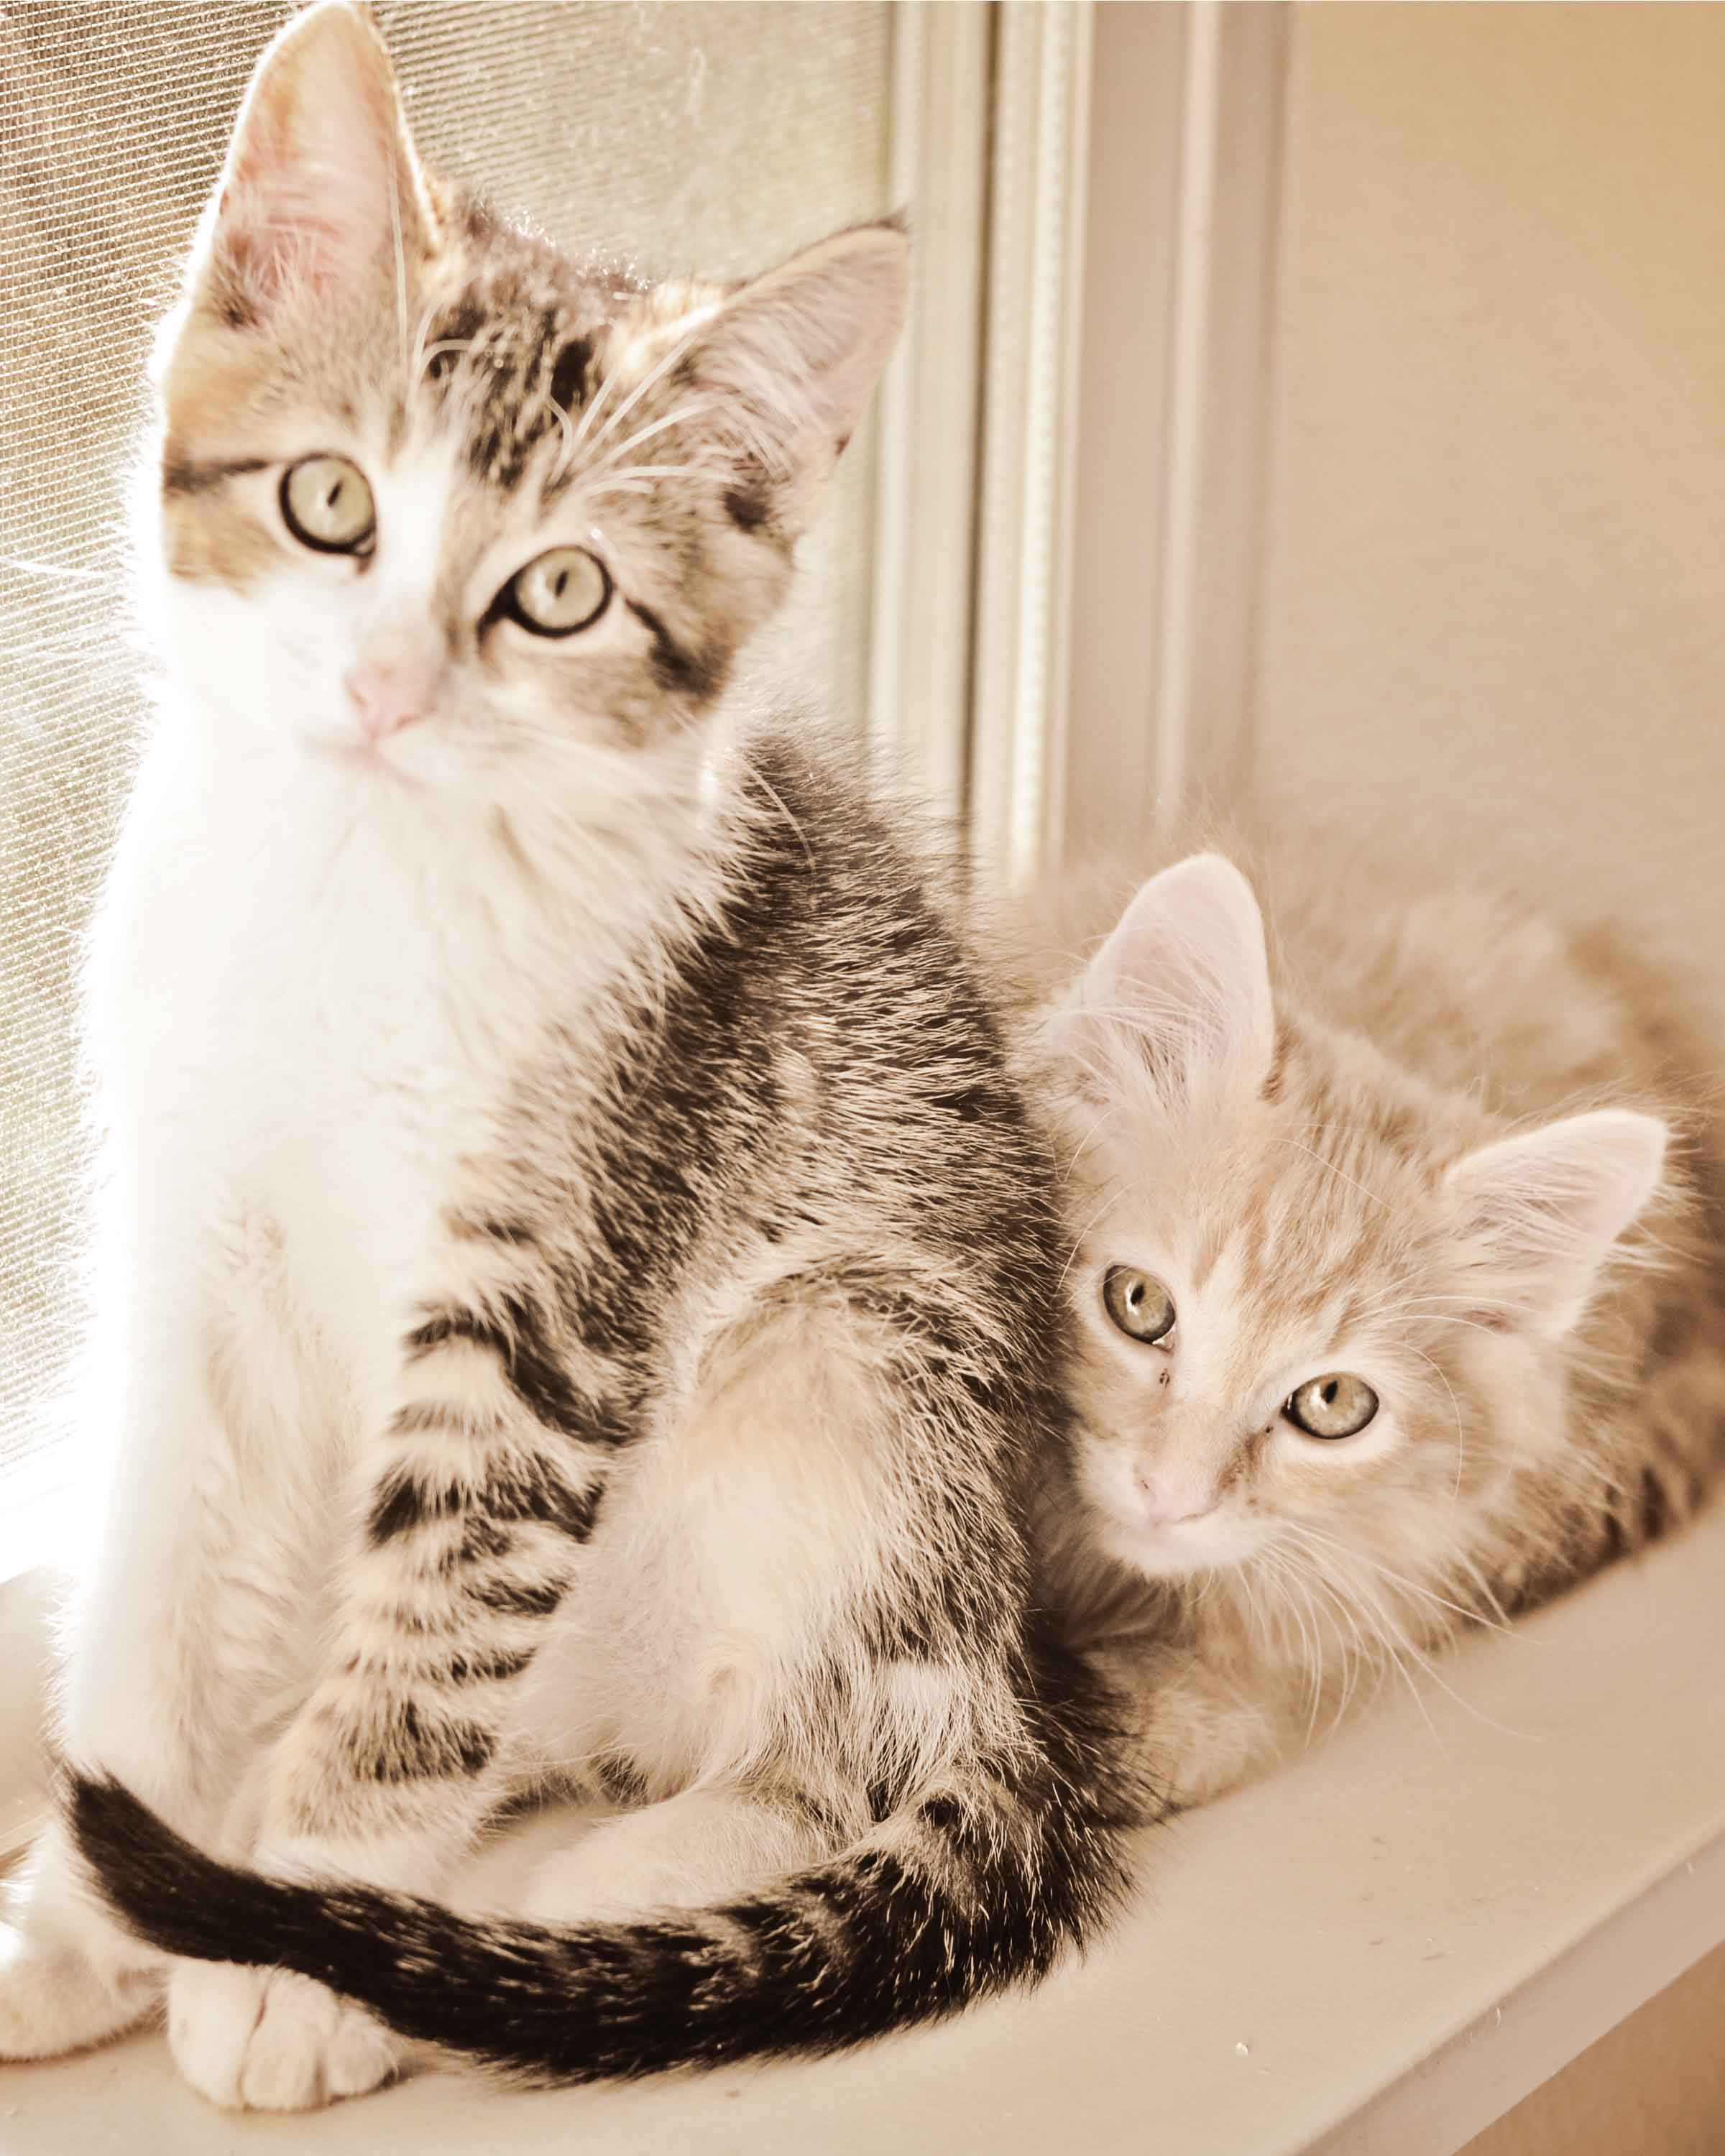 Shelter Kittens Move to Happy Home